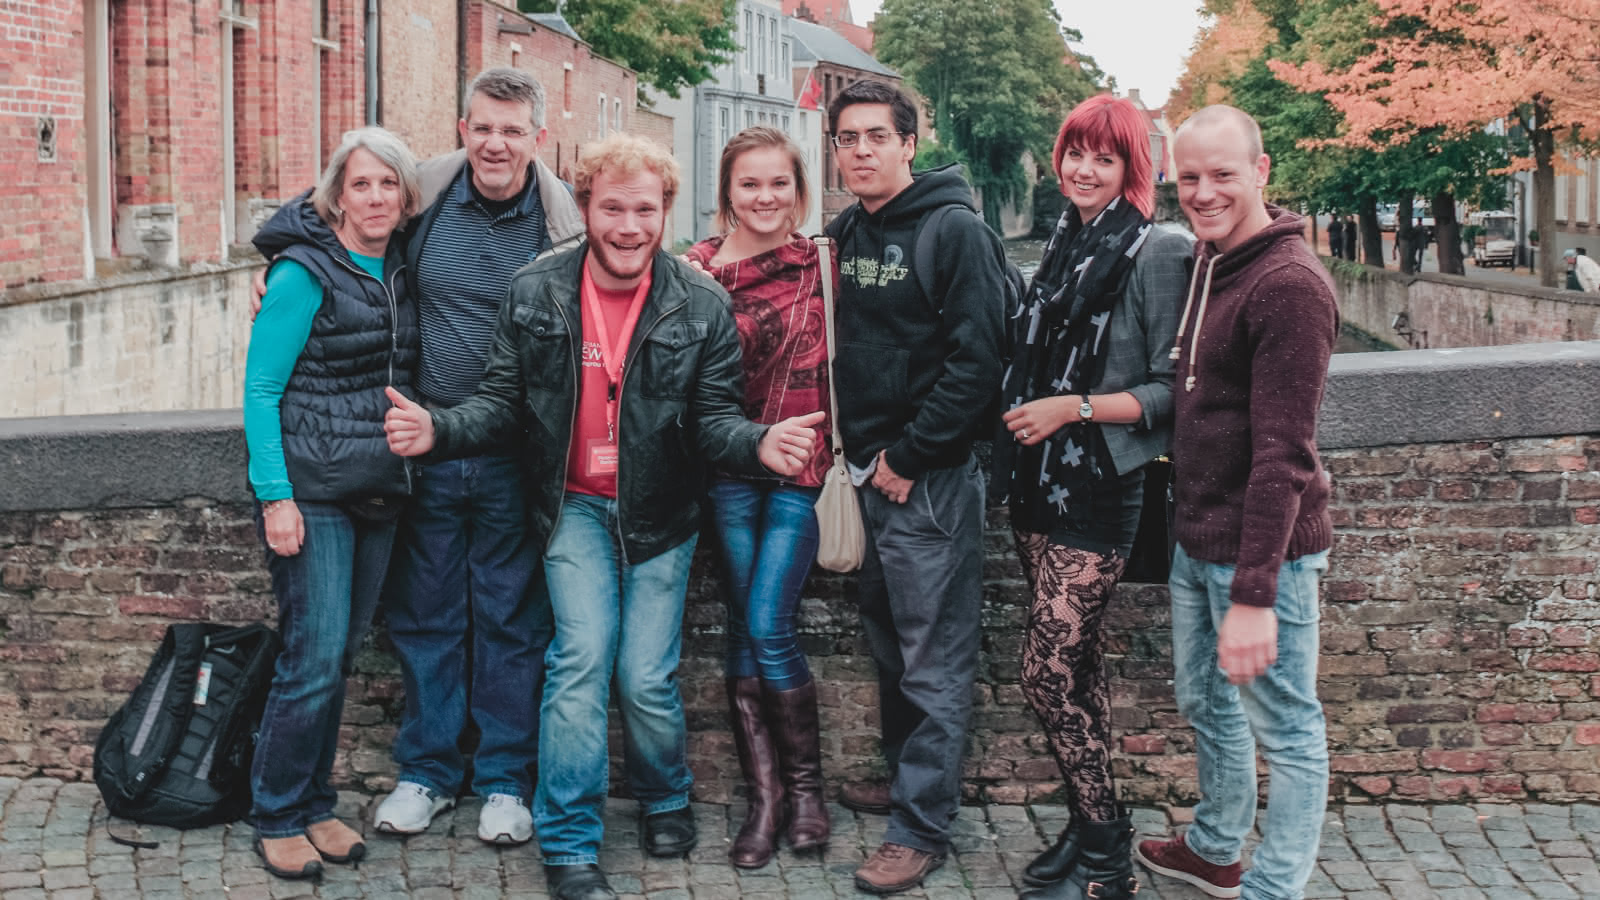 sandemans bruges tour group photo in bruges